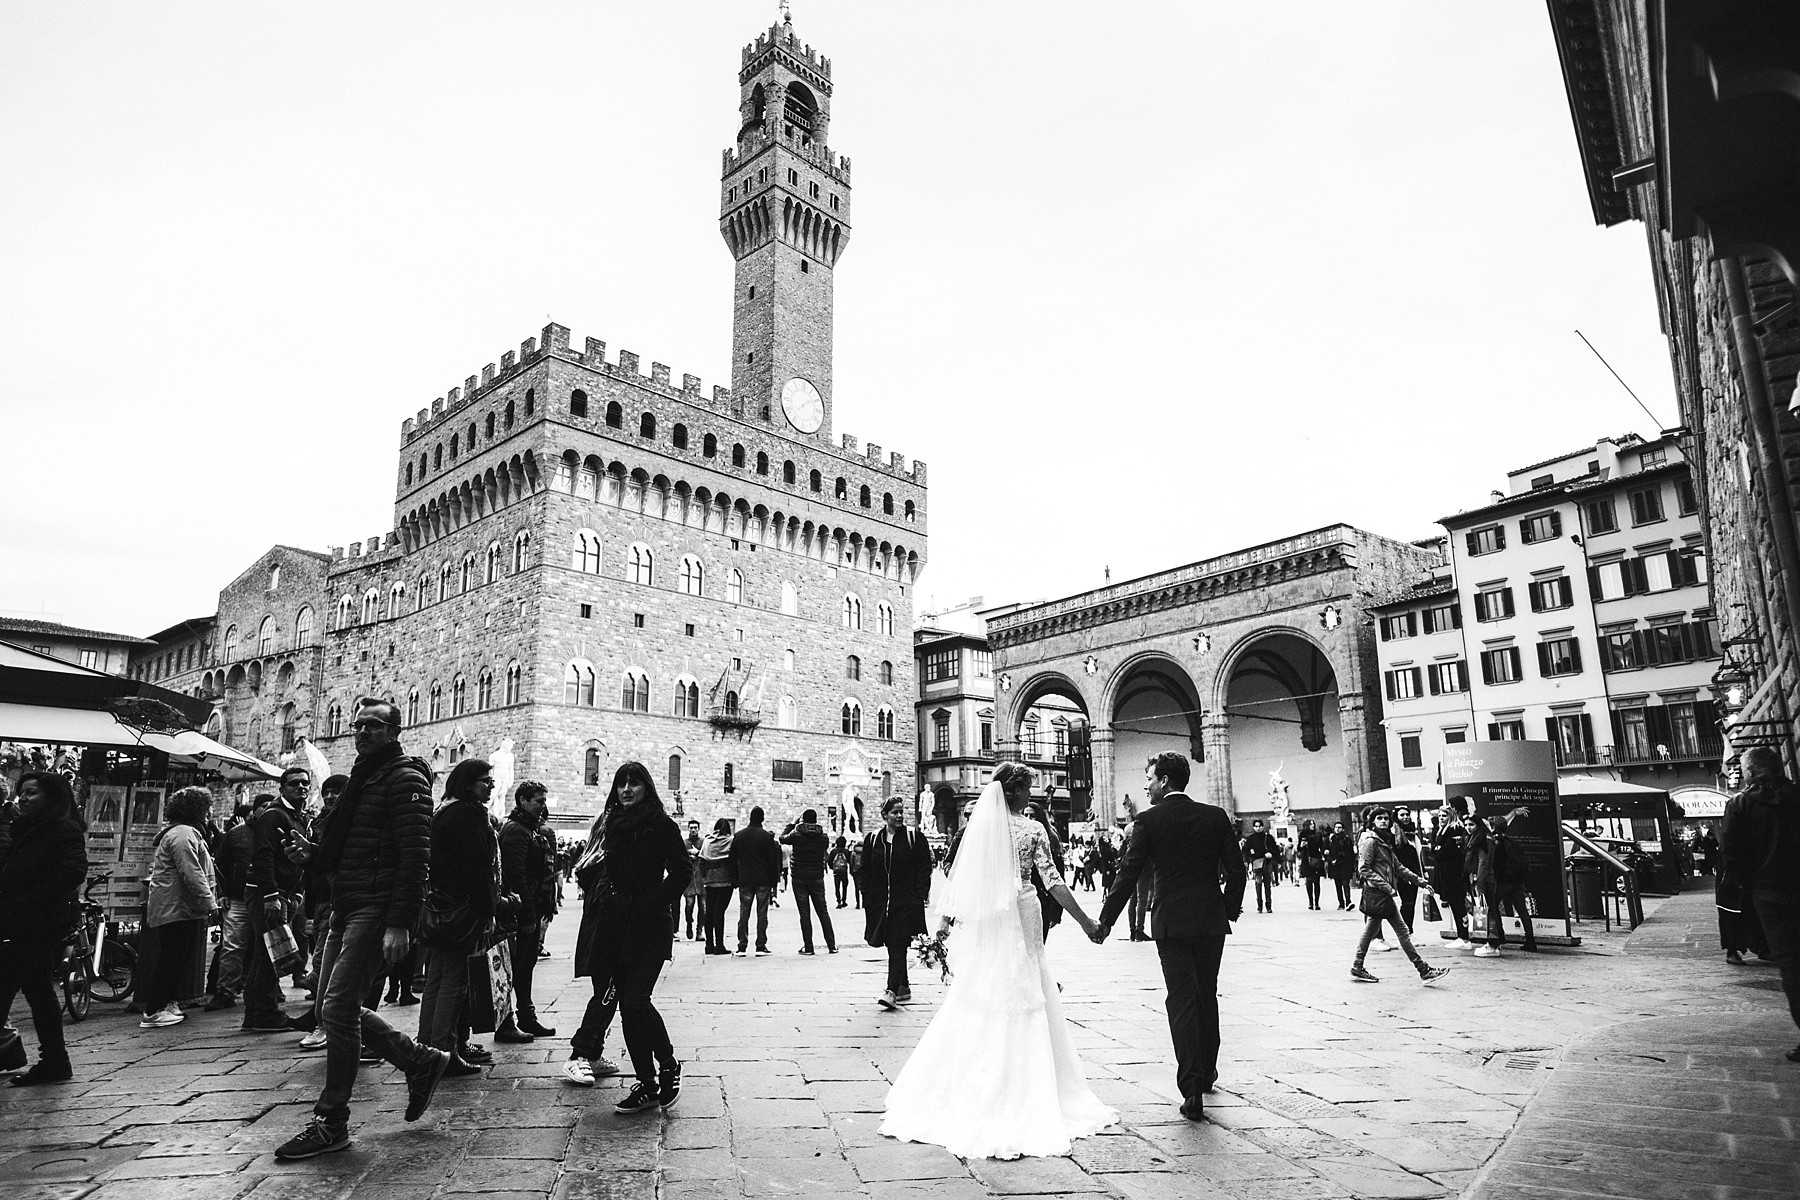 Lovely bride and groom wedding photo at Palazzo Vecchio in Piazza della Signoria near Uffizi museum. Intimate and elegant destination wedding at luxury hotel St. Regis Florence